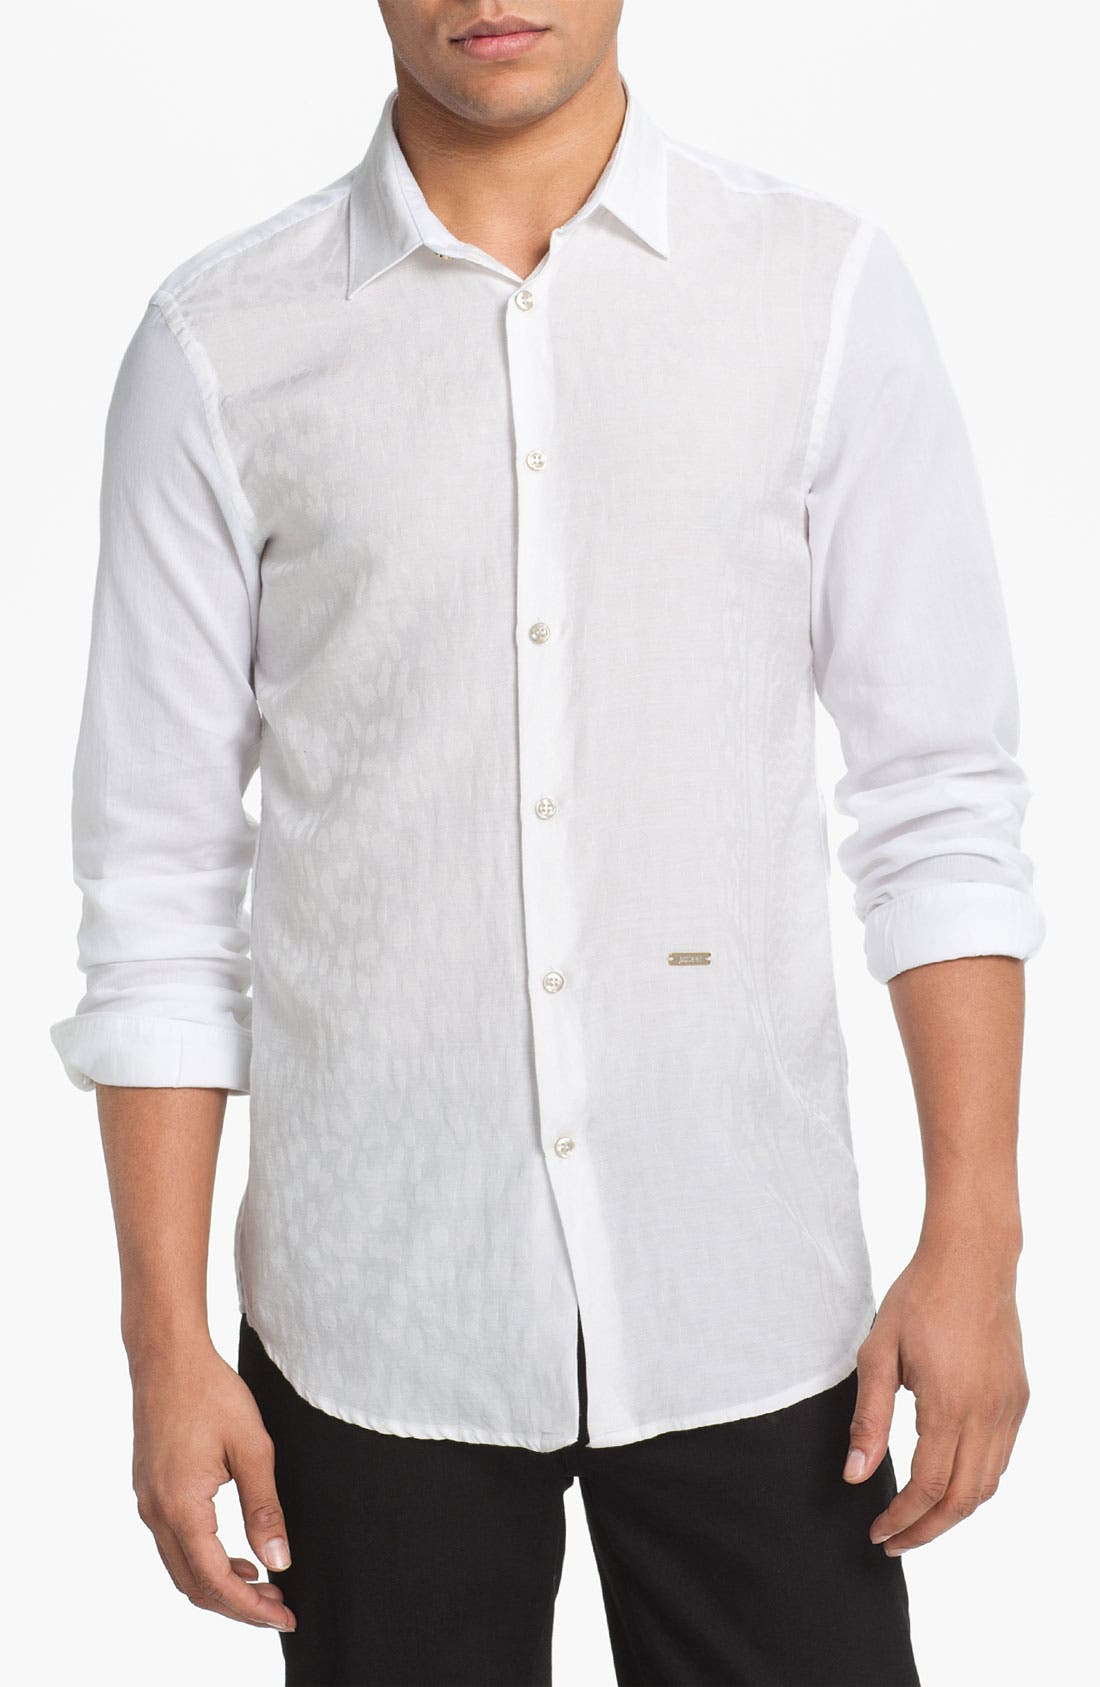 Main Image - Just Cavalli Woven Shirt